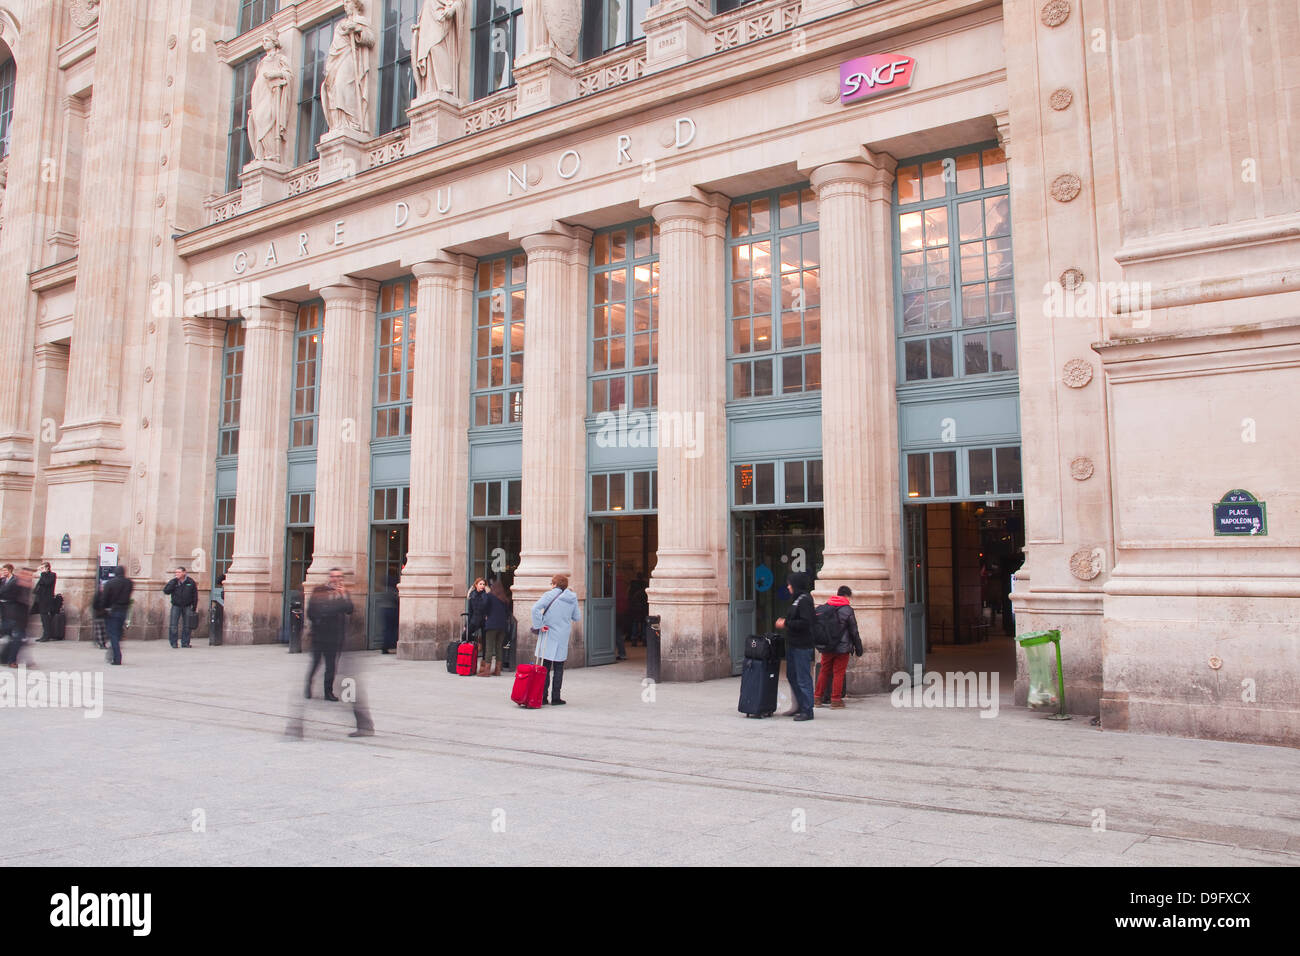 Gare du Nord railway station in Paris, France - Stock Image